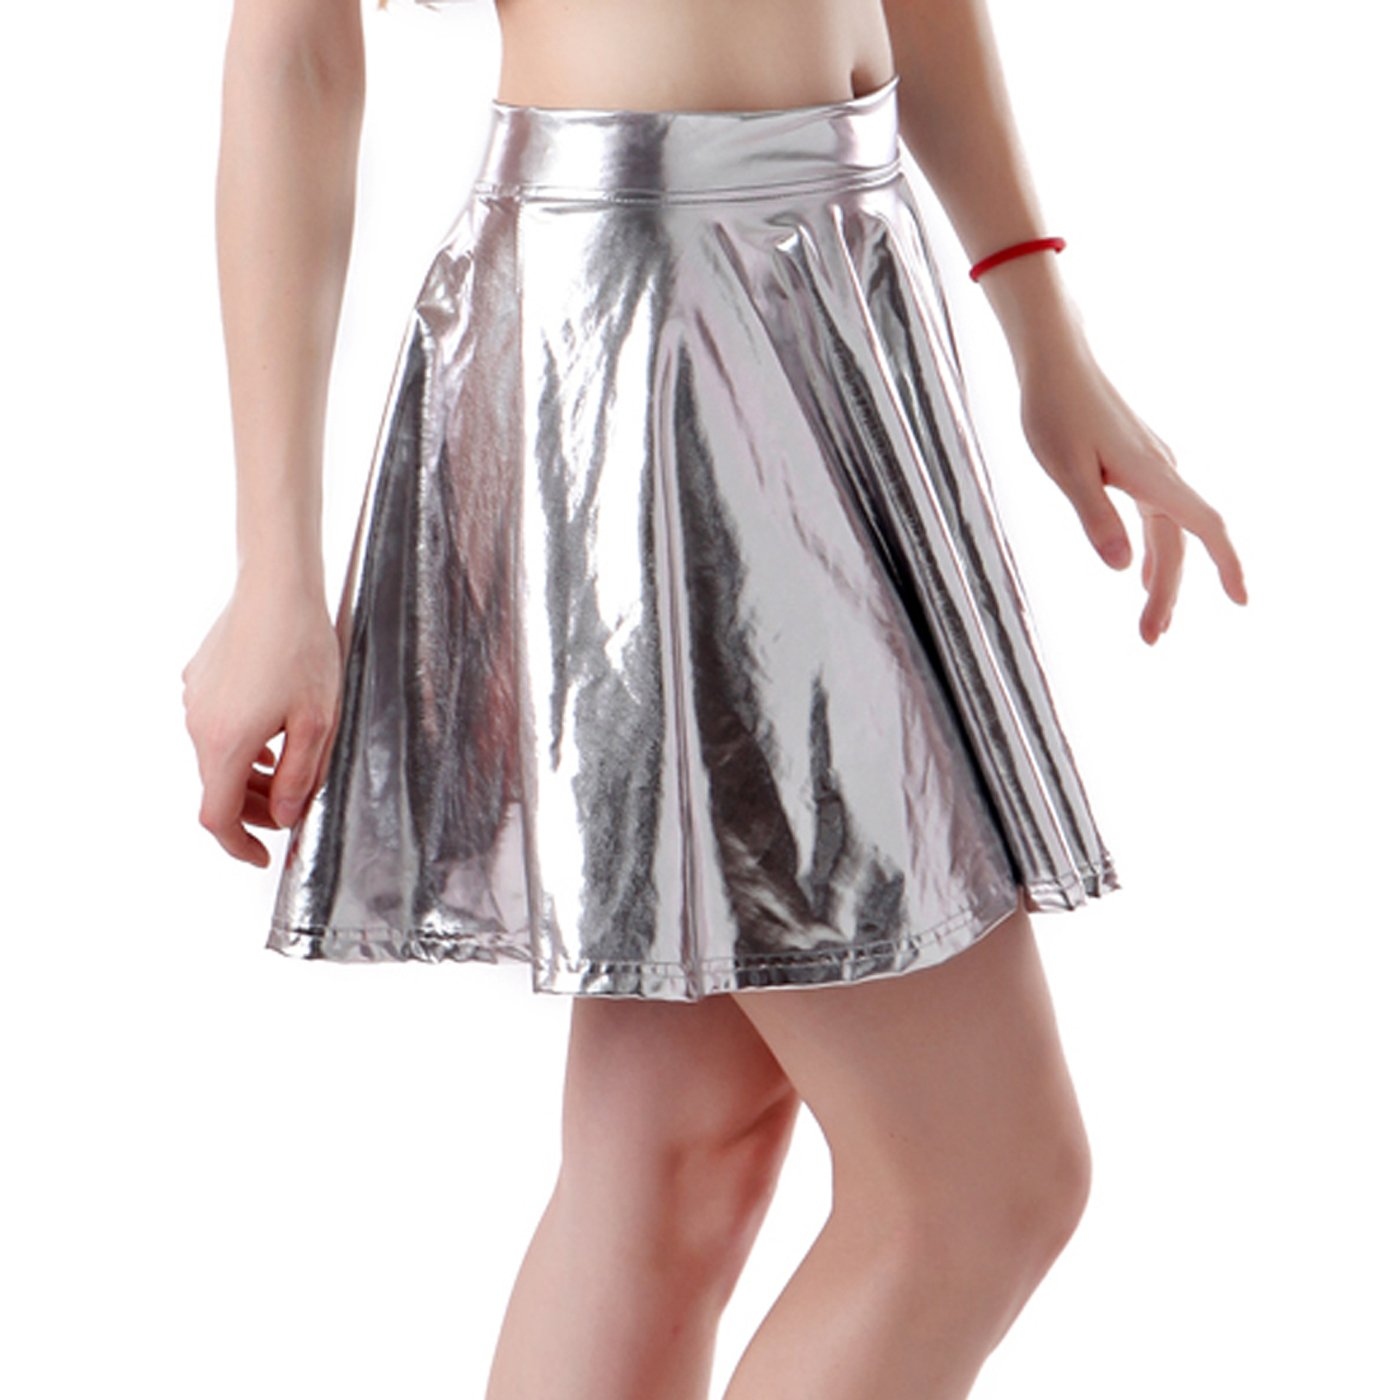 ac5d83067 Galleon - HDE Women's Shiny Liquid Metallic Wet Look Flared Pleated Skater  Skirt (Silver, Small)